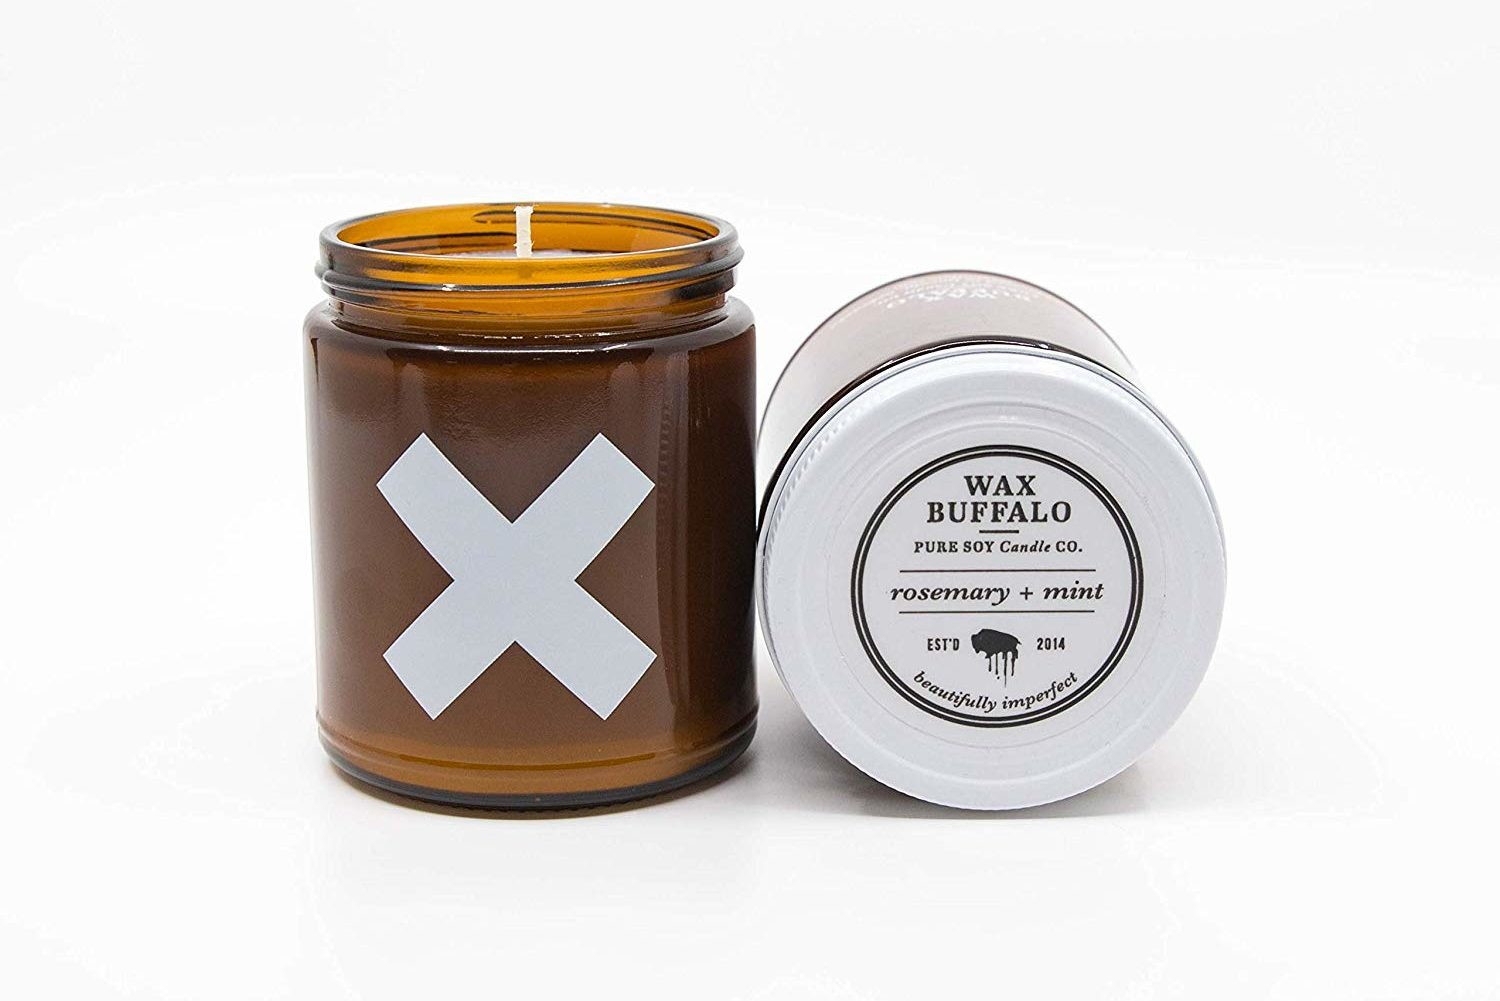 wax buffalo handmade pure soy candle